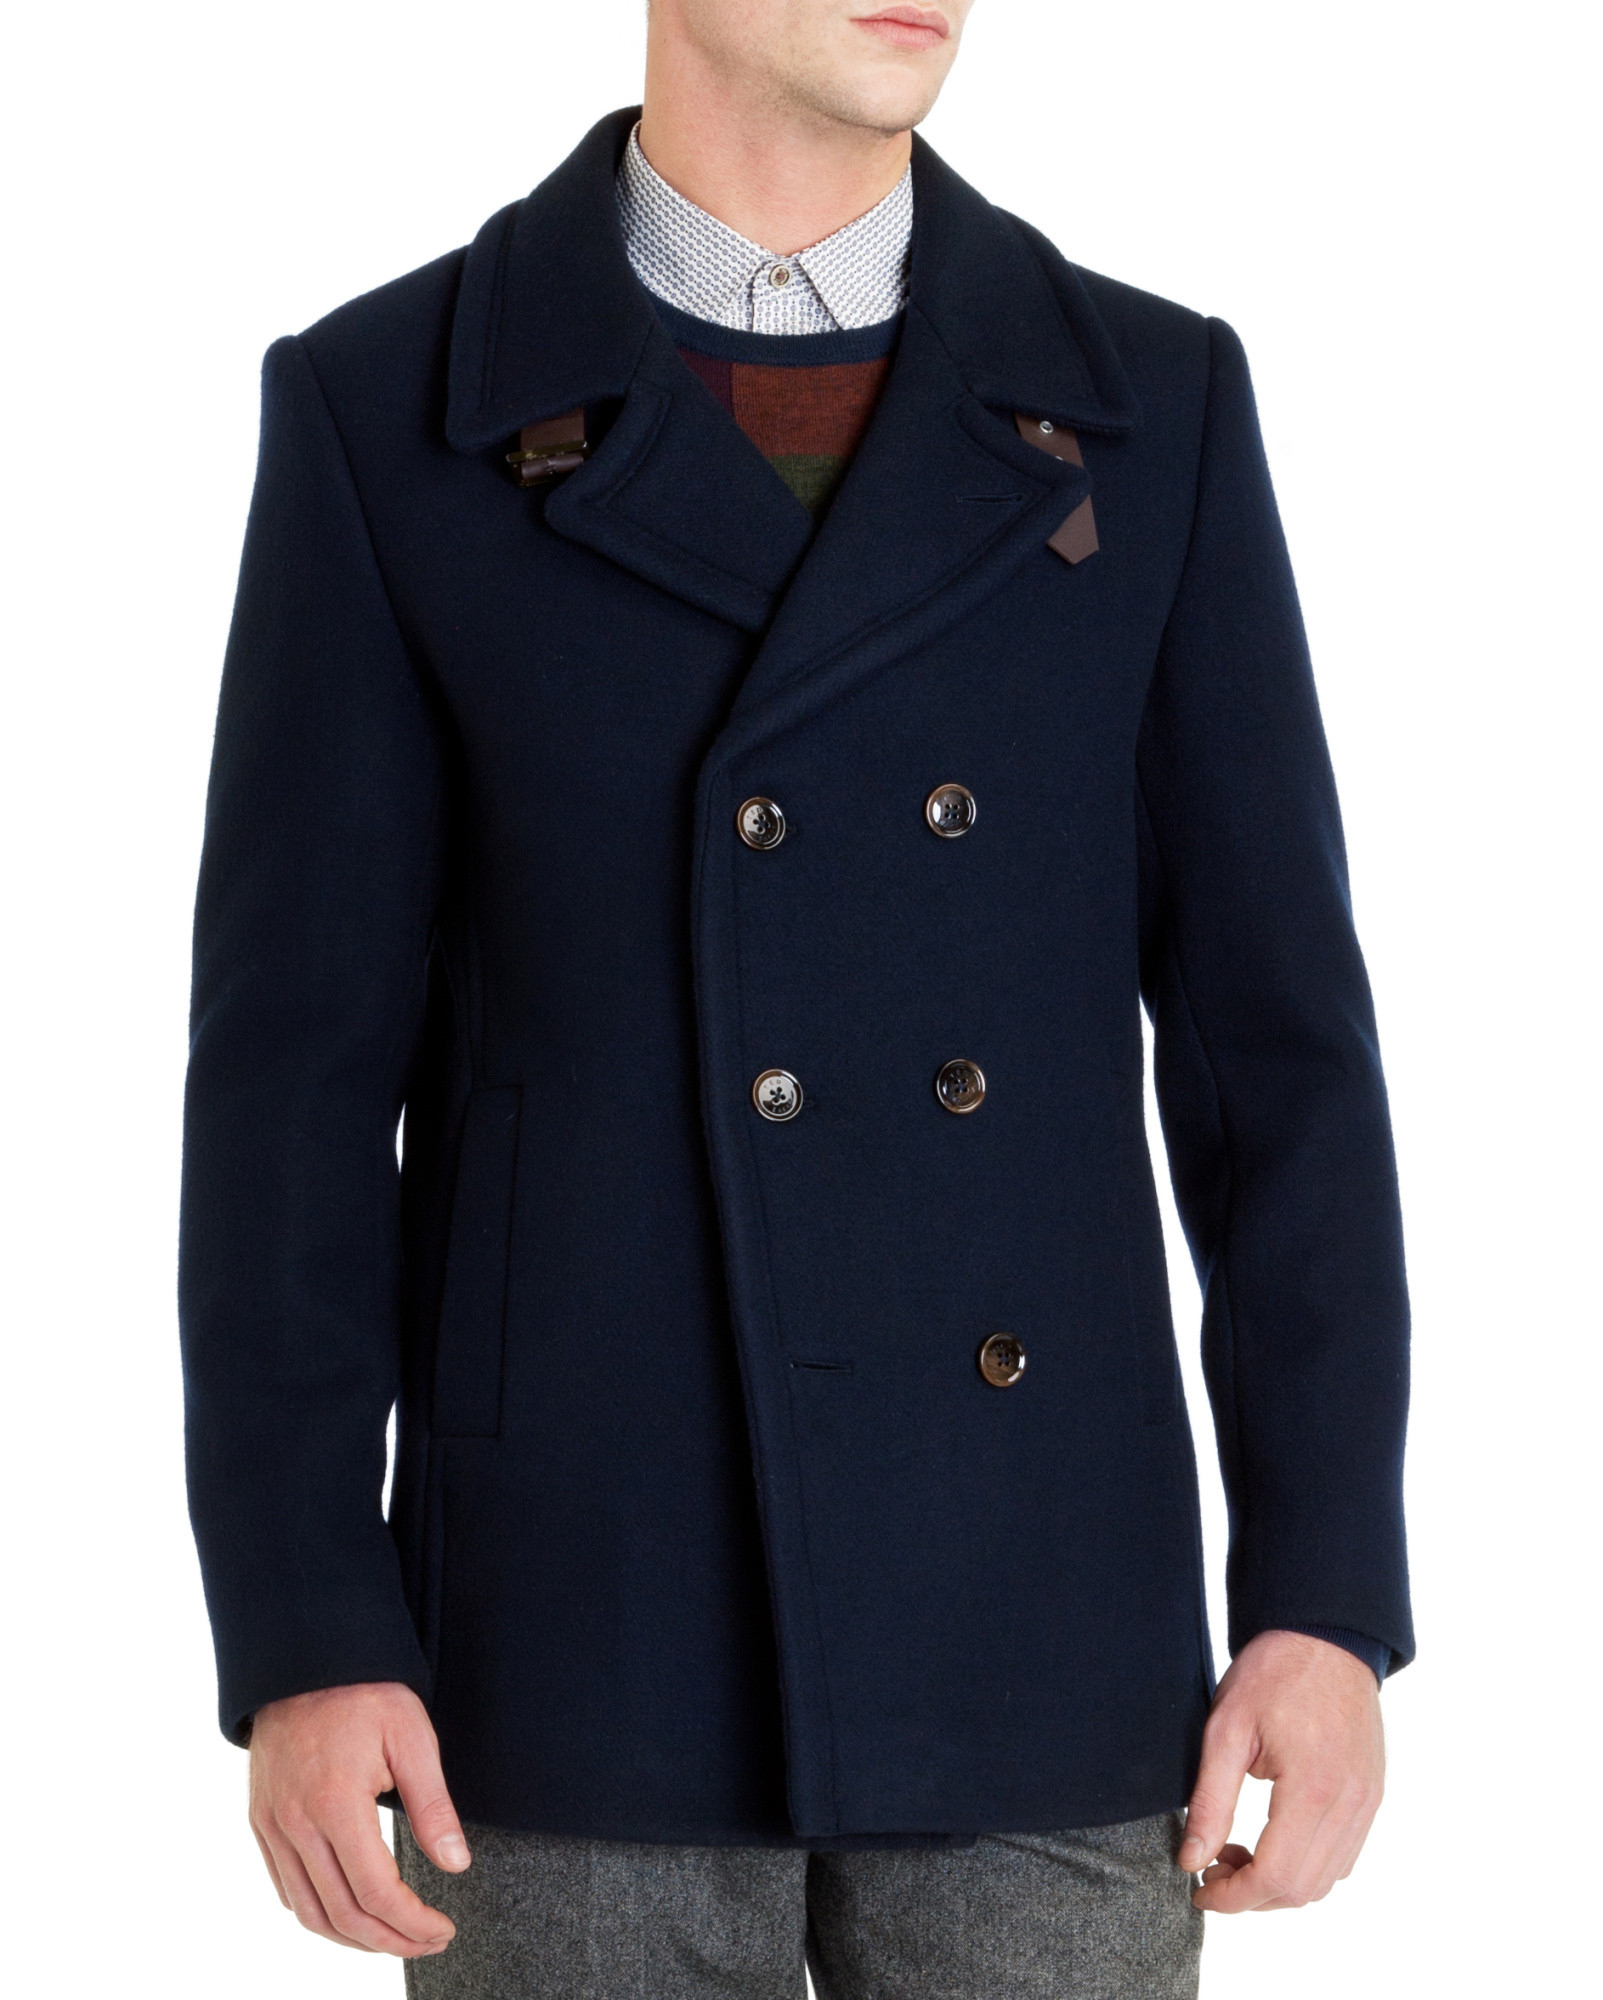 e46bfff6eab734 Ted Baker Nojorah Double Breasted Peacoat in Blue for Men - Lyst